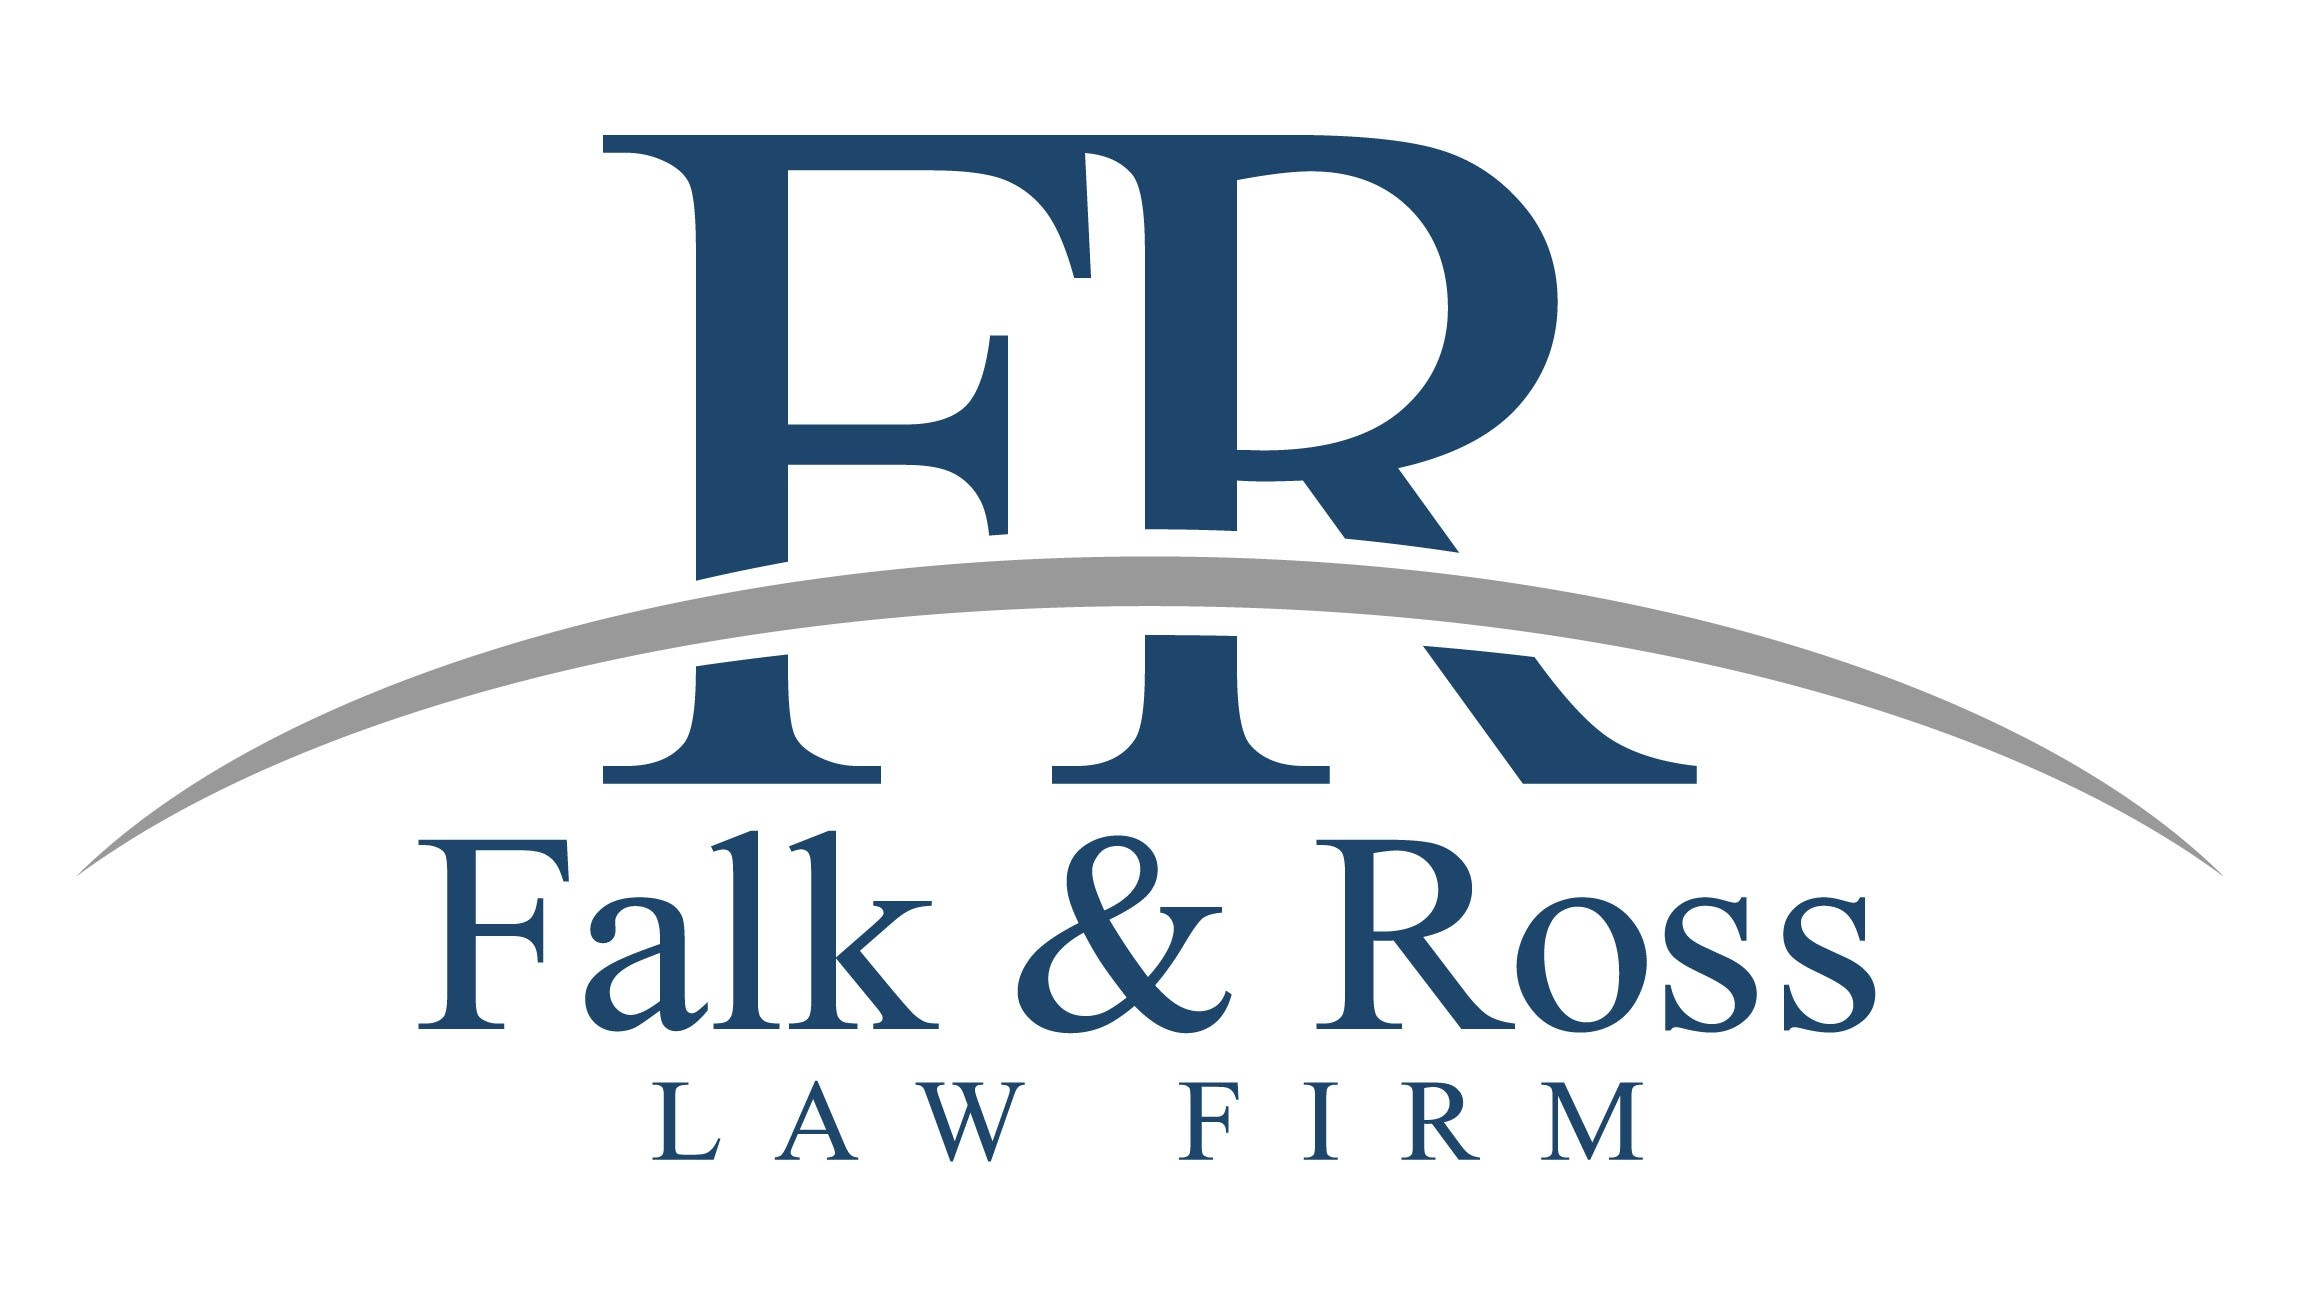 Falk & Ross Law Firm | Miami Florida